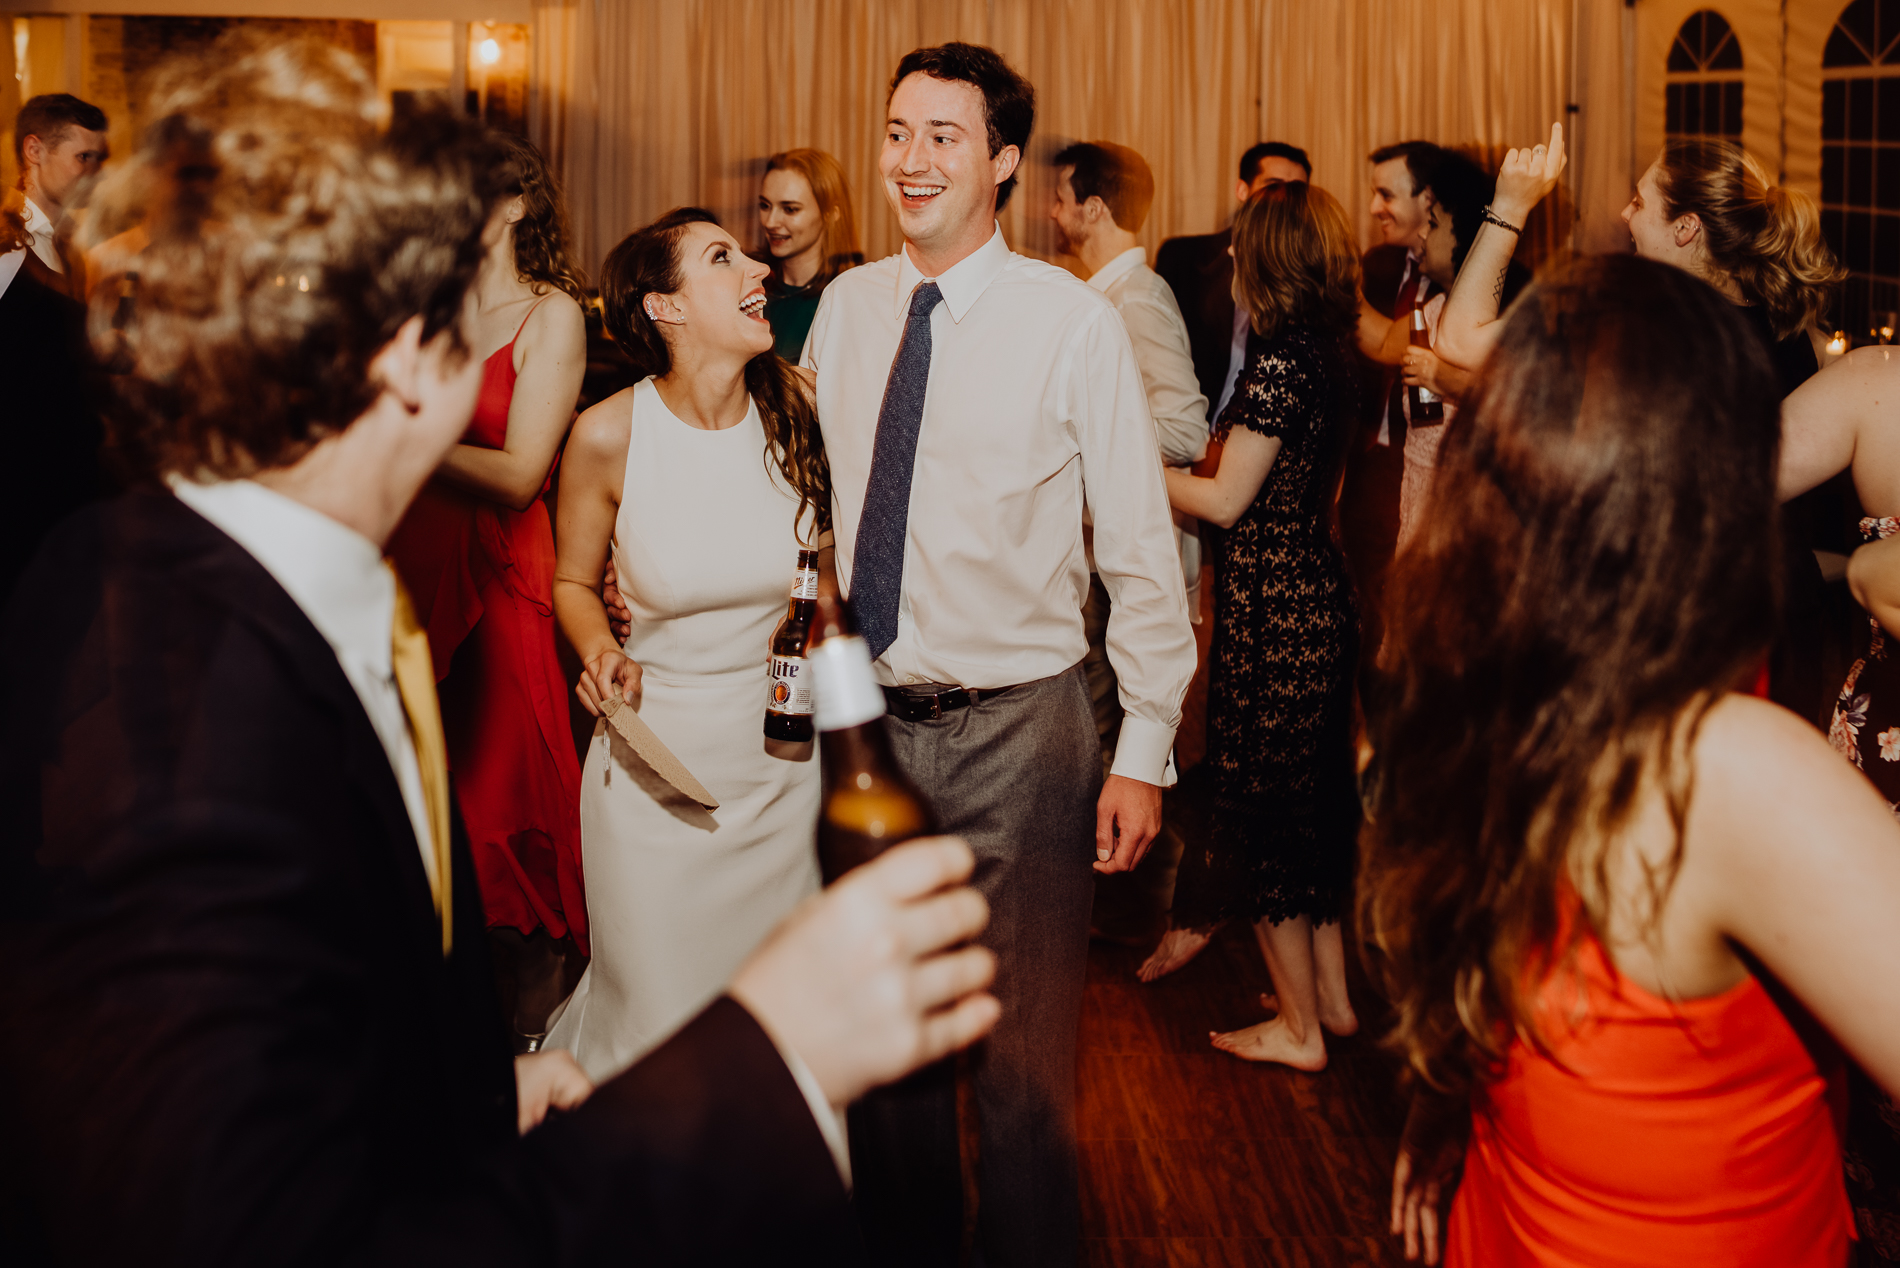 gabi and campbell east nashville wedding at riverwood mansion by wilde company-56.jpg